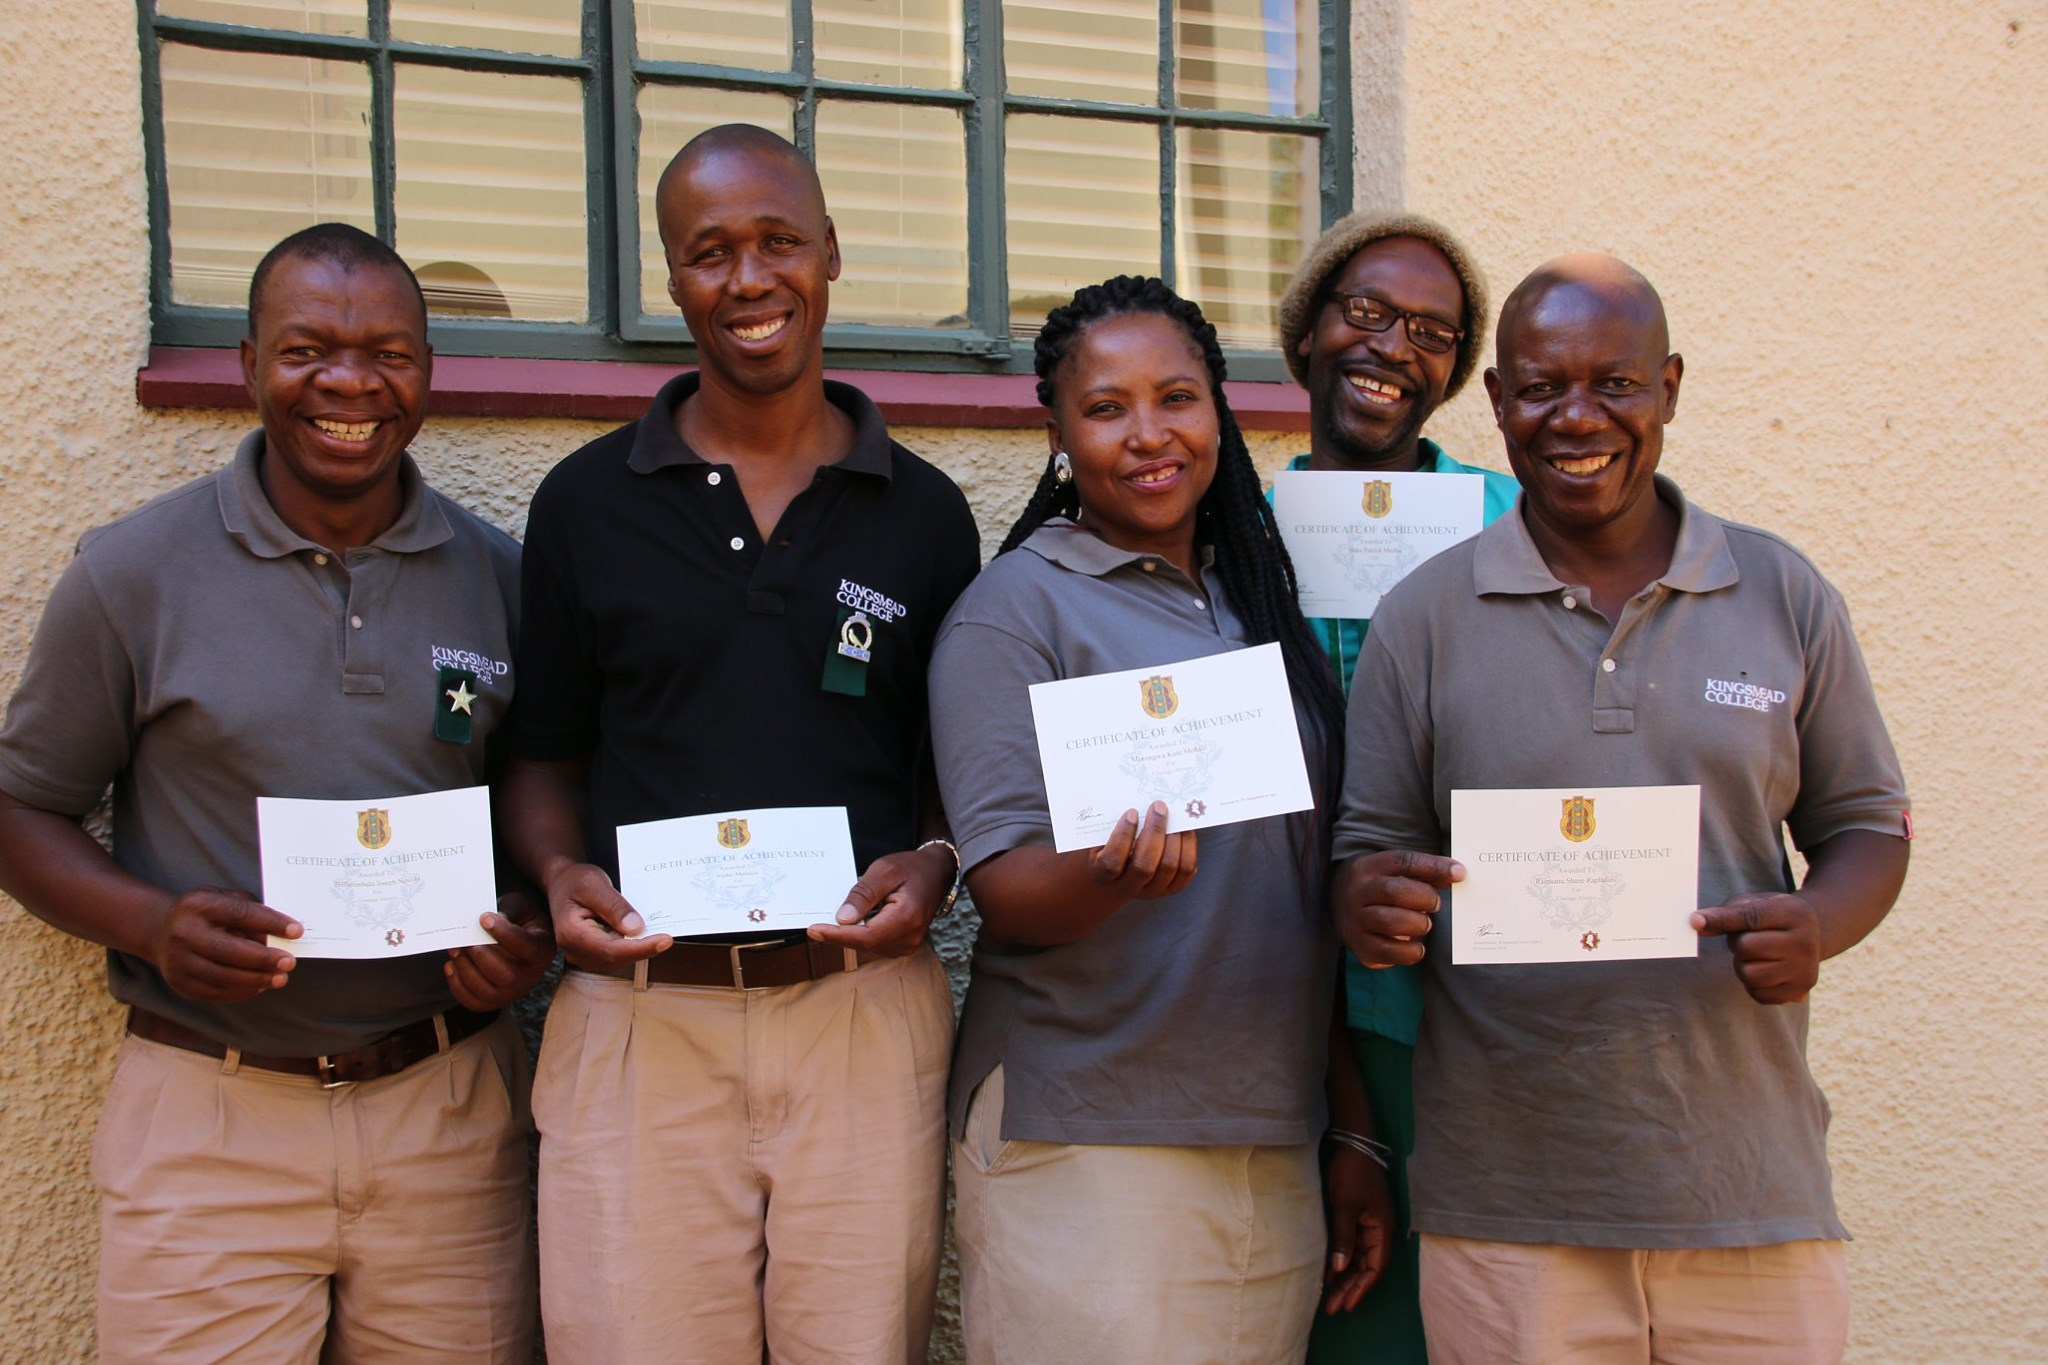 Kingsmead College staff with First Aid Certificates